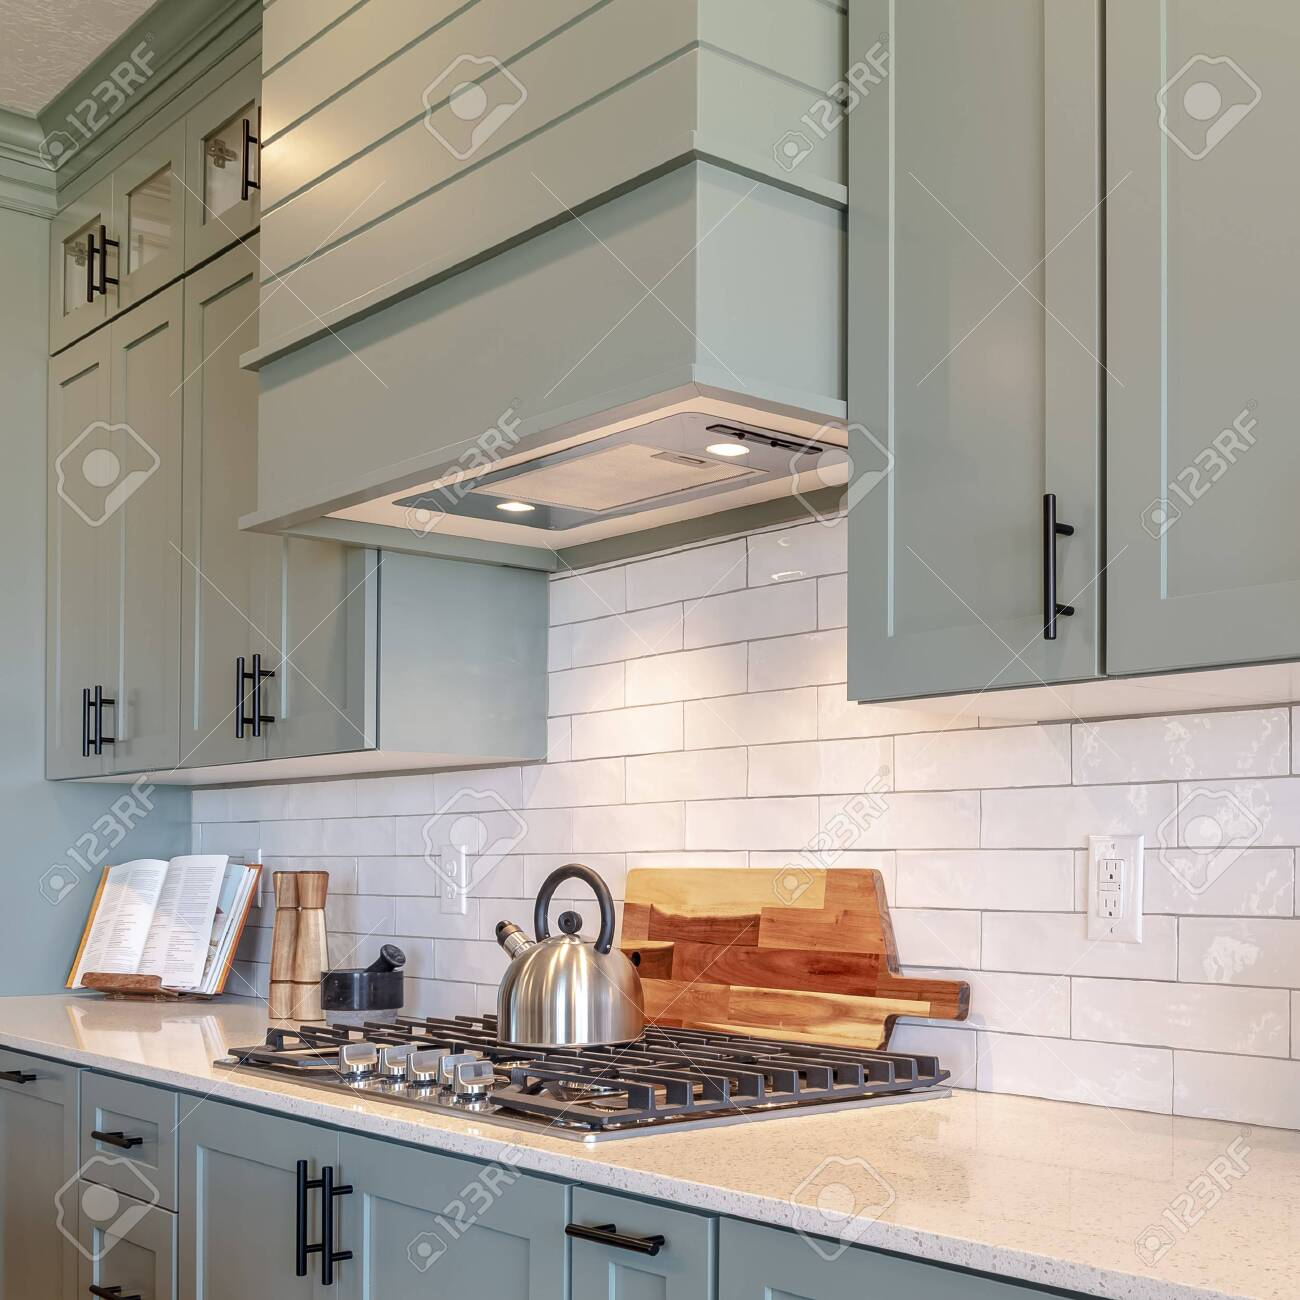 - Square Kitchen Interior With Cooktop On White Counter Top Under